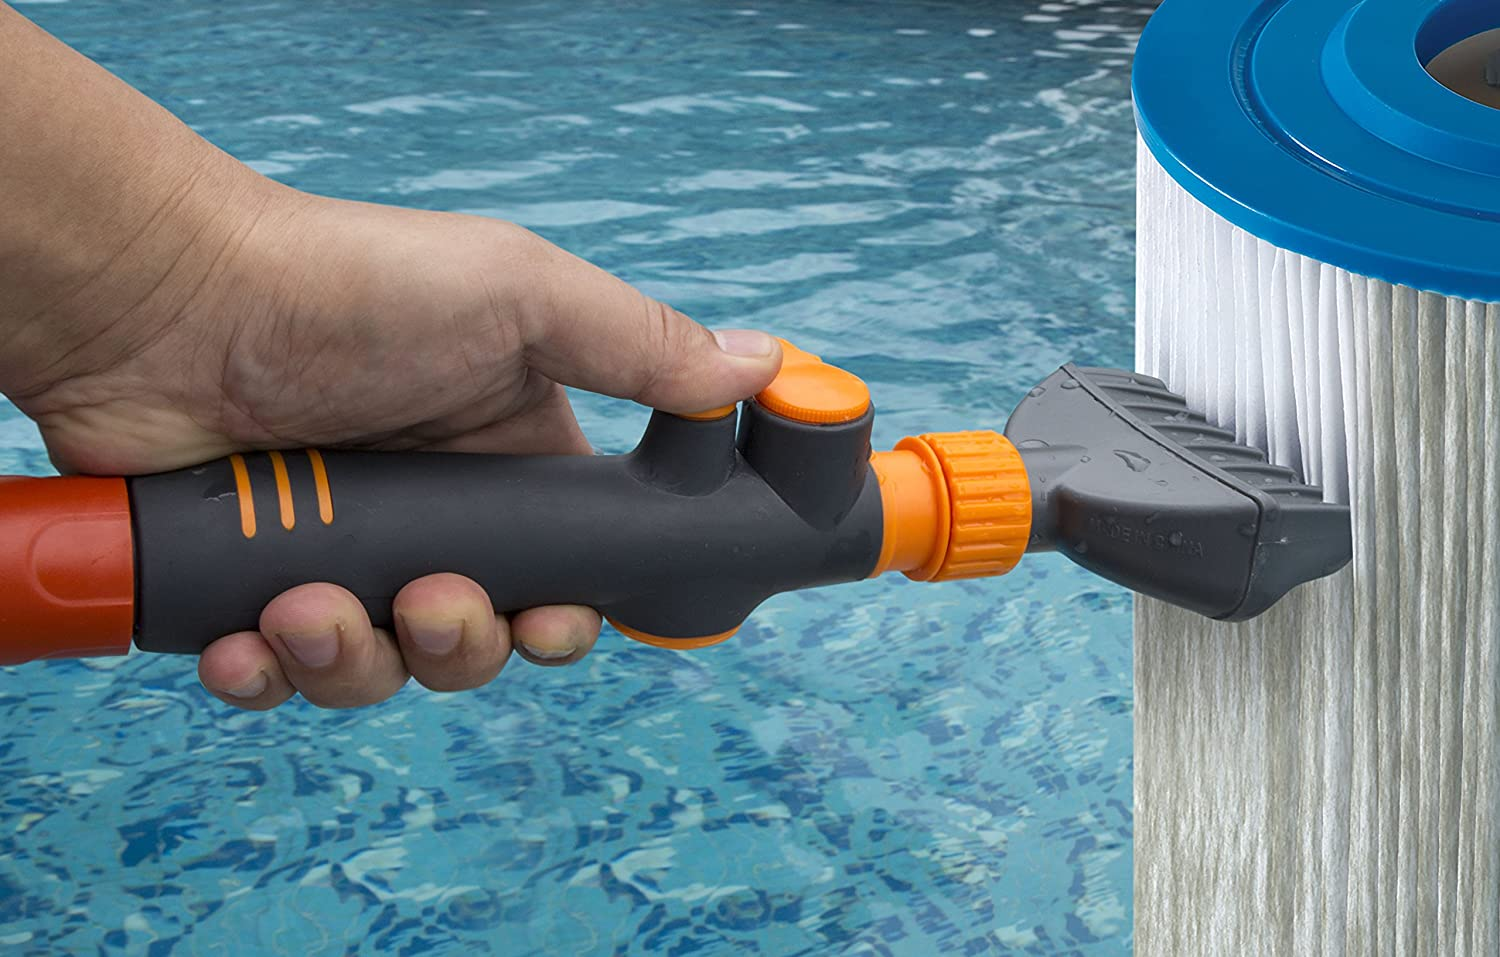 Heave Duty /& Durable Pool Cartridge Filter Cleaner Removes Debris and Dirt From Pool Filters in Seconds Keep a Clean Flow of Water Today! Premium Pool /& Spa Filter Cartridge Cleaner by Aquatix Pro